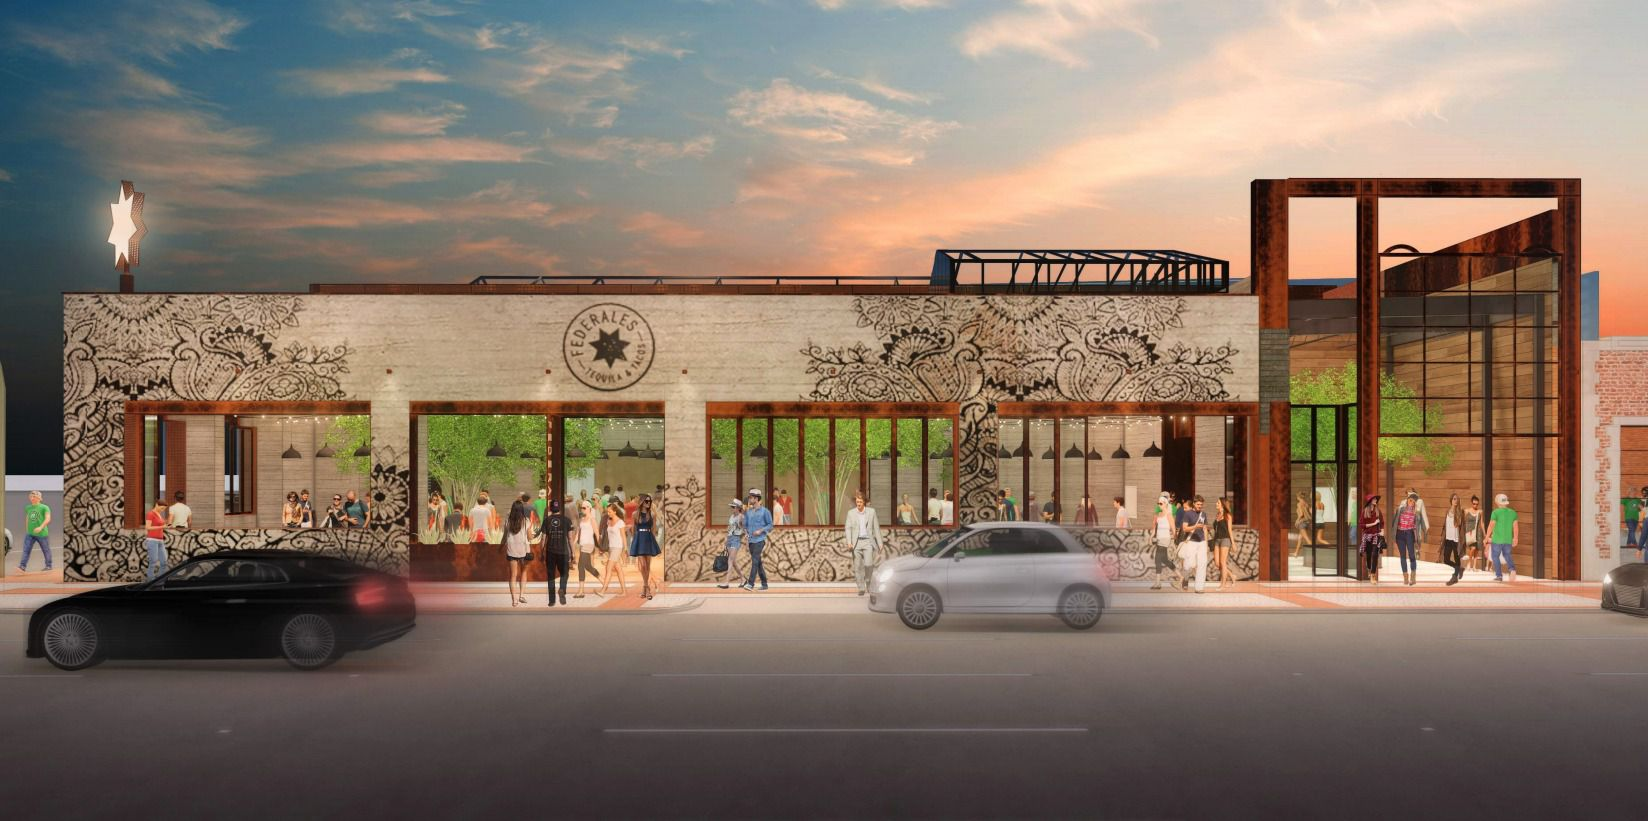 Federales, shown here in a rendering, is a 12,000 square-foot restaurant and bar from a restaurant group in Chicago. It's expected to open in Deep Ellum in 2021.